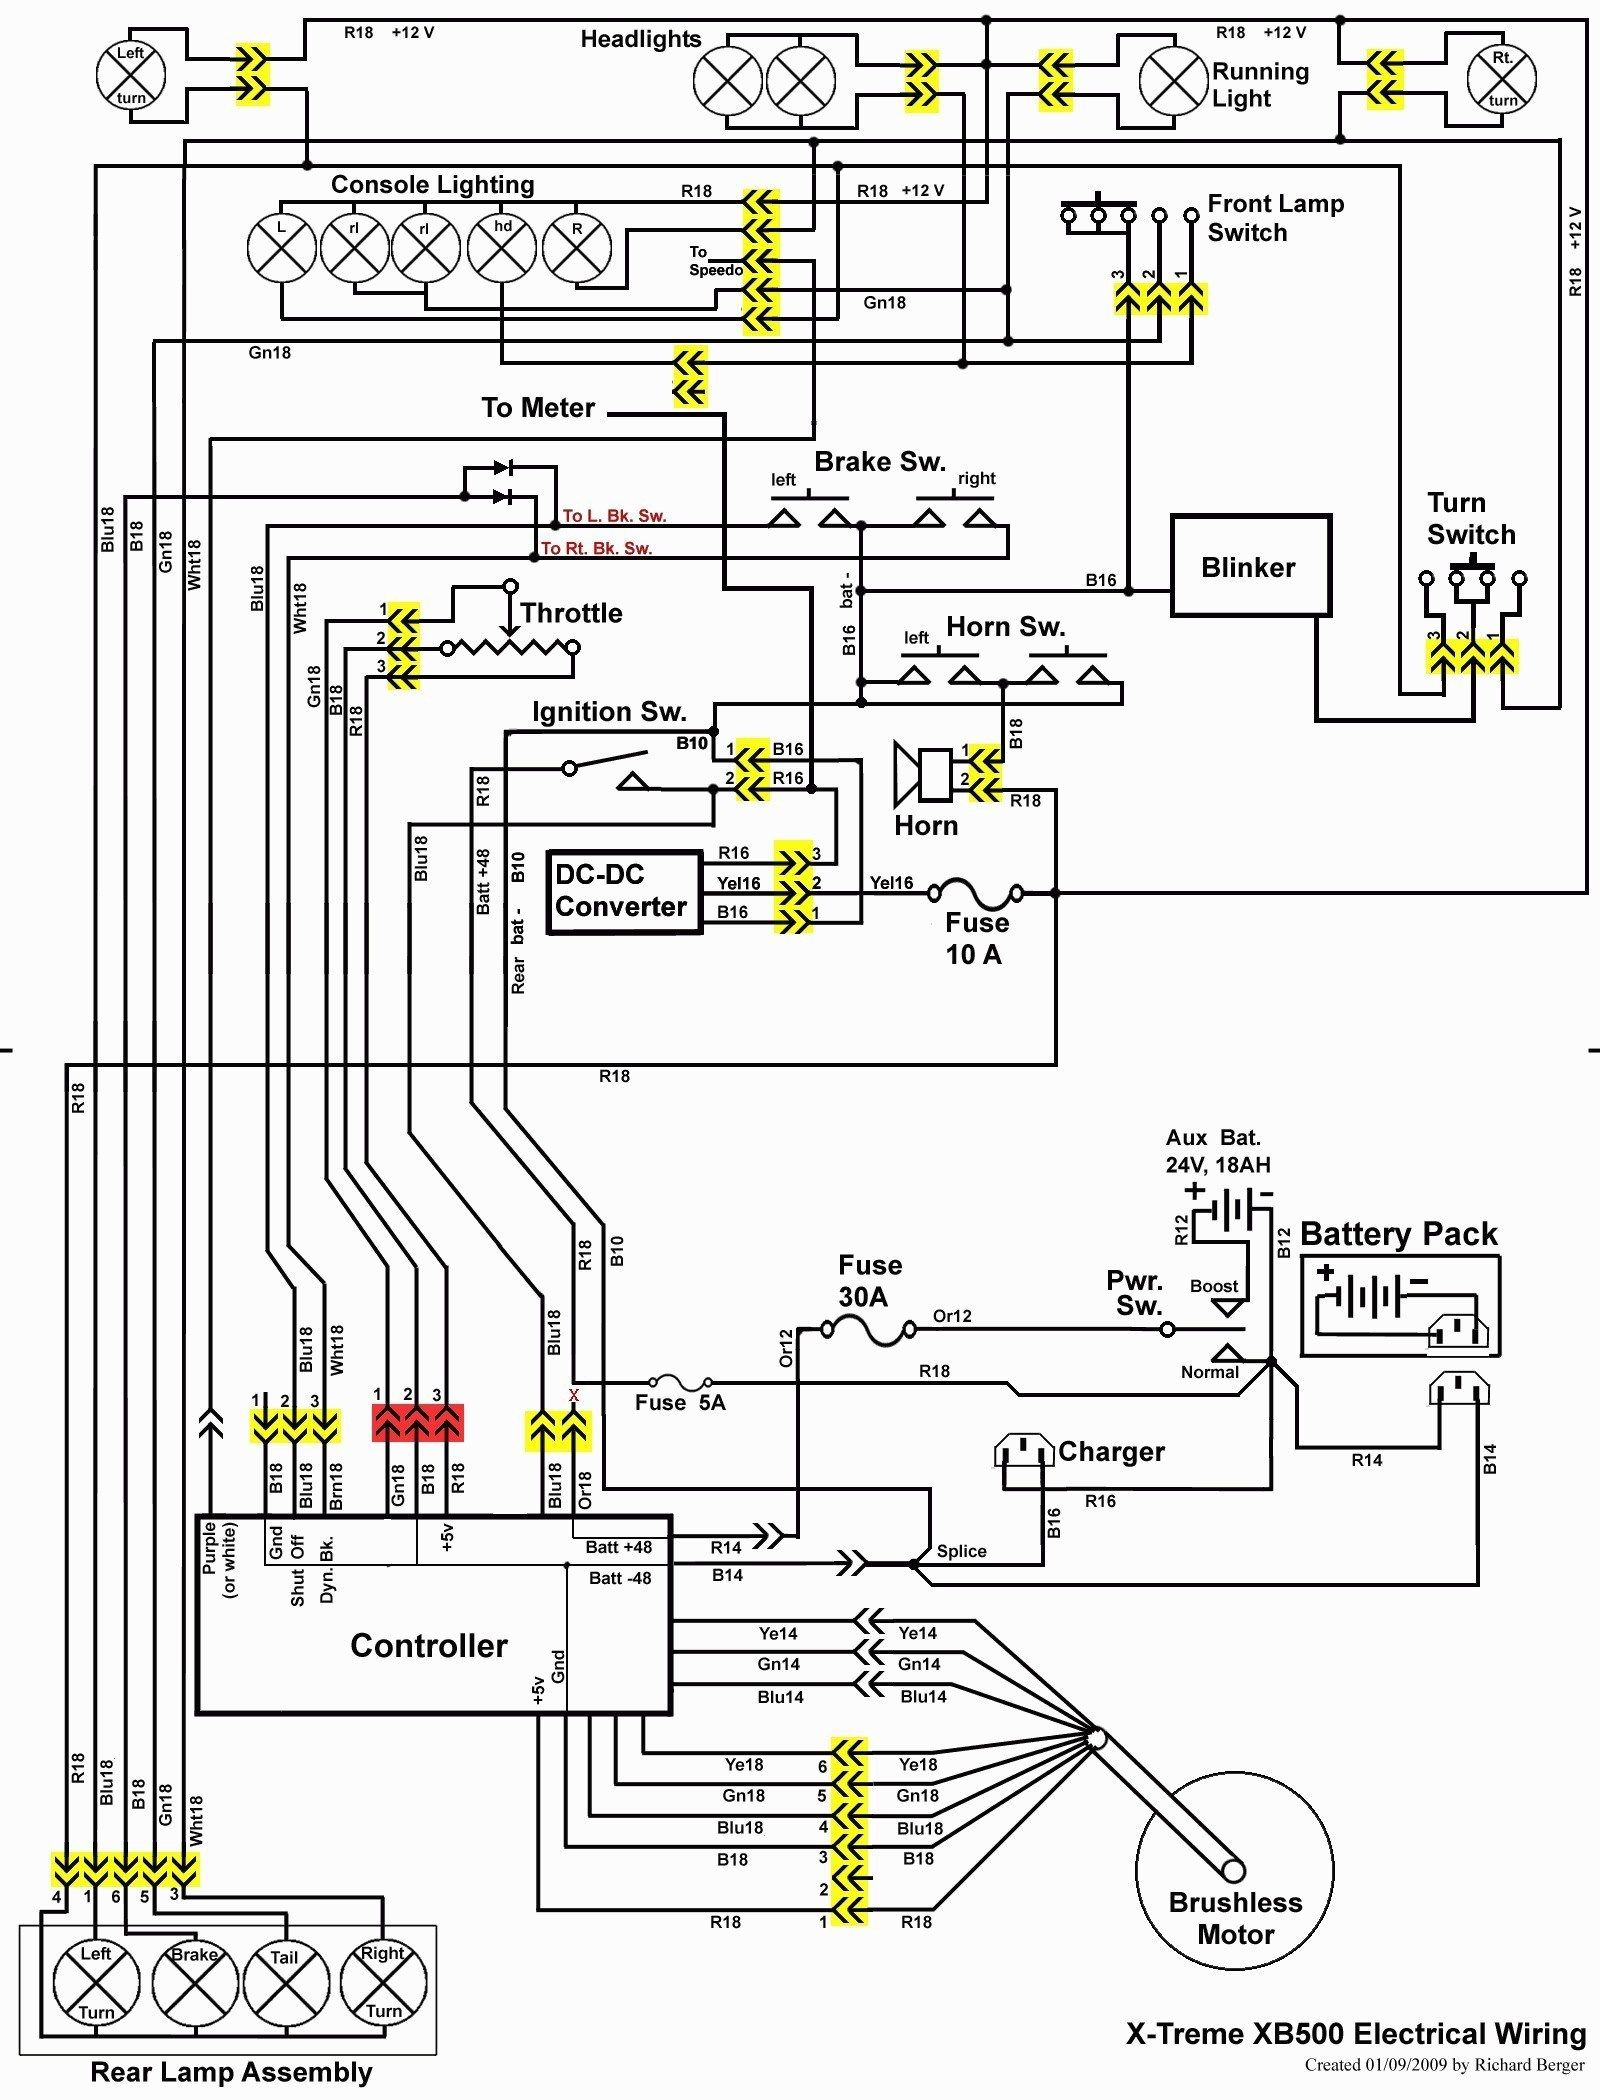 Wiring Diagram For Electric Scooter Http Bookingritzcarlton Info Wiring Diagram For Electric Scooter Electric Scooter Electric Bike Diy Razor Scooter